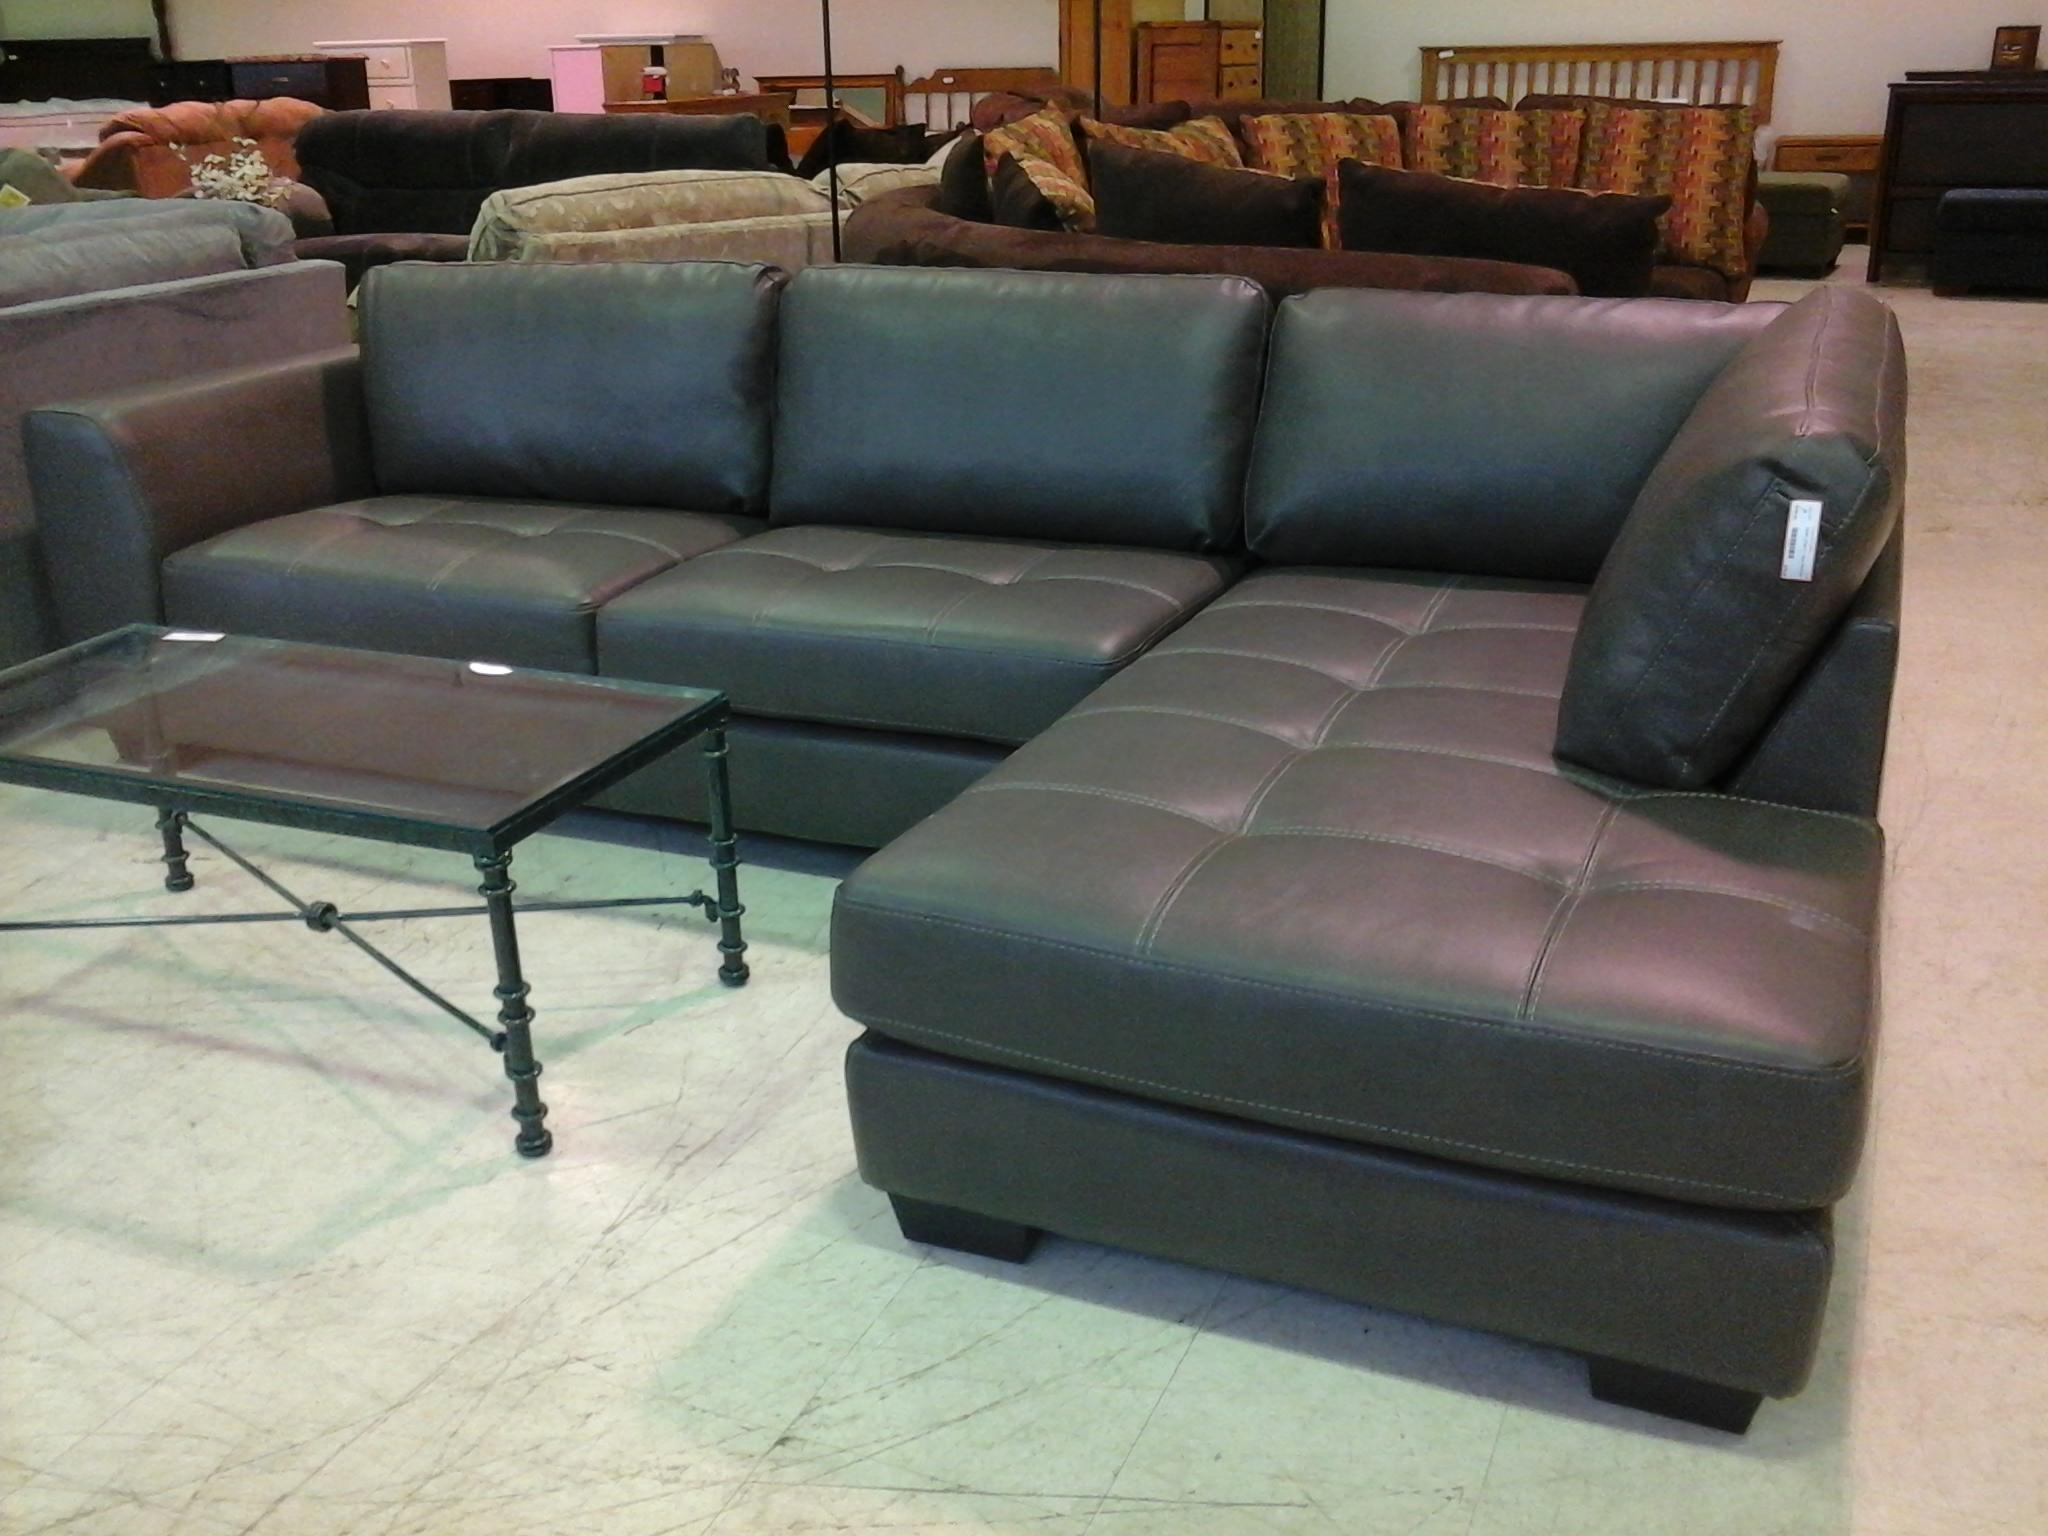 Charcoal Grey Sofa With Chaise | Tehranmix Decoration Pertaining To Charcoal Grey Sofas (Image 11 of 20)